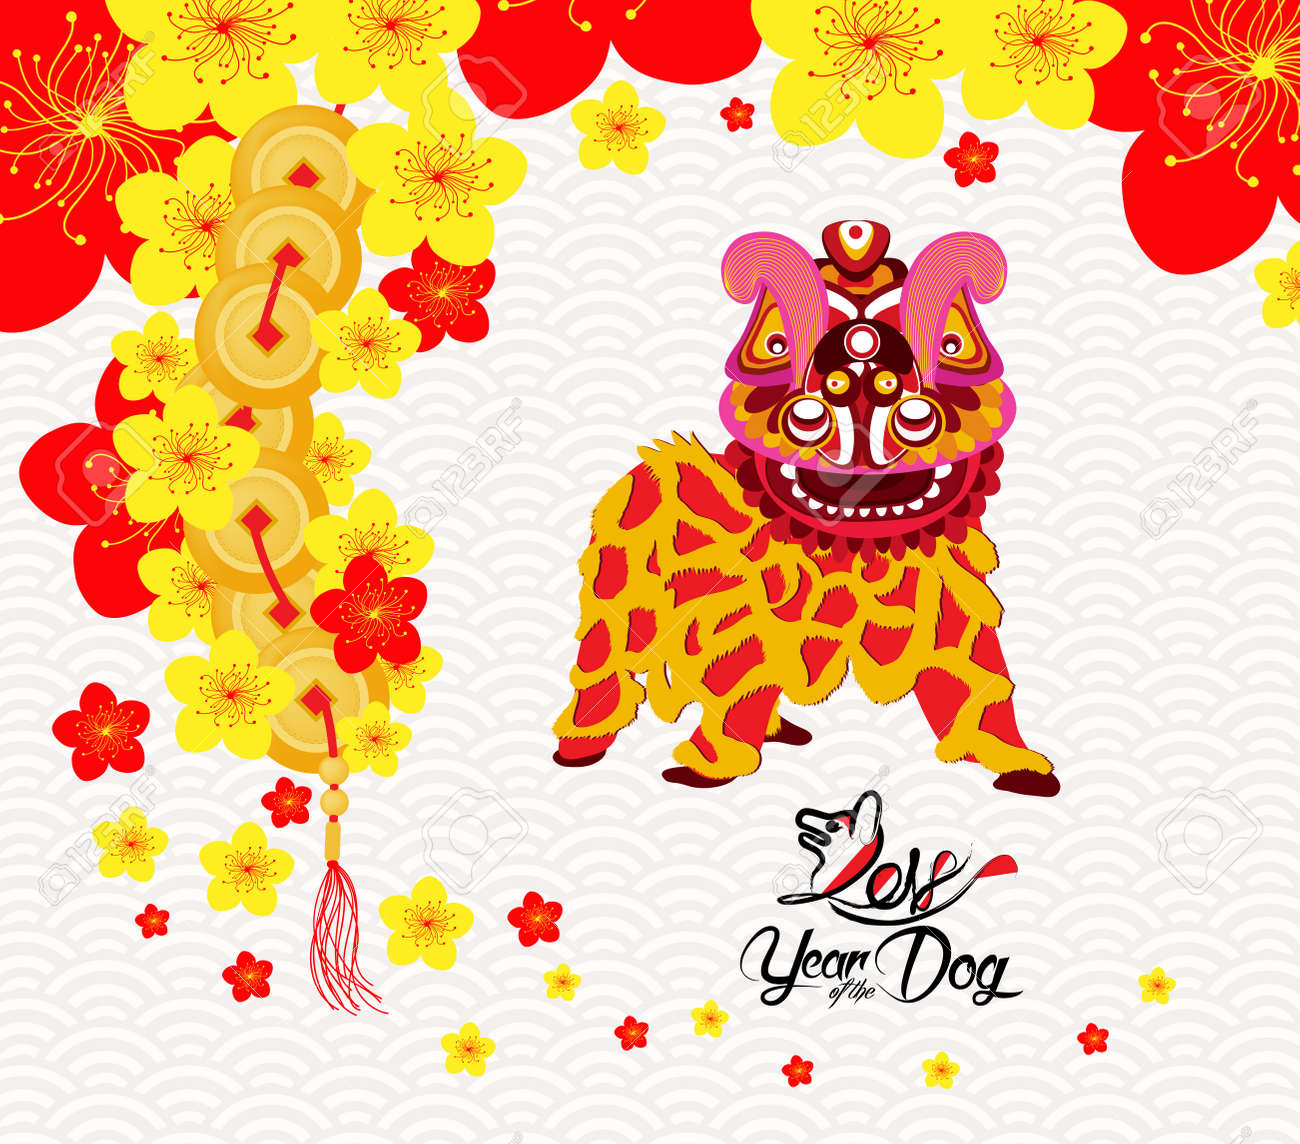 Image result for lion dance in year of dog images